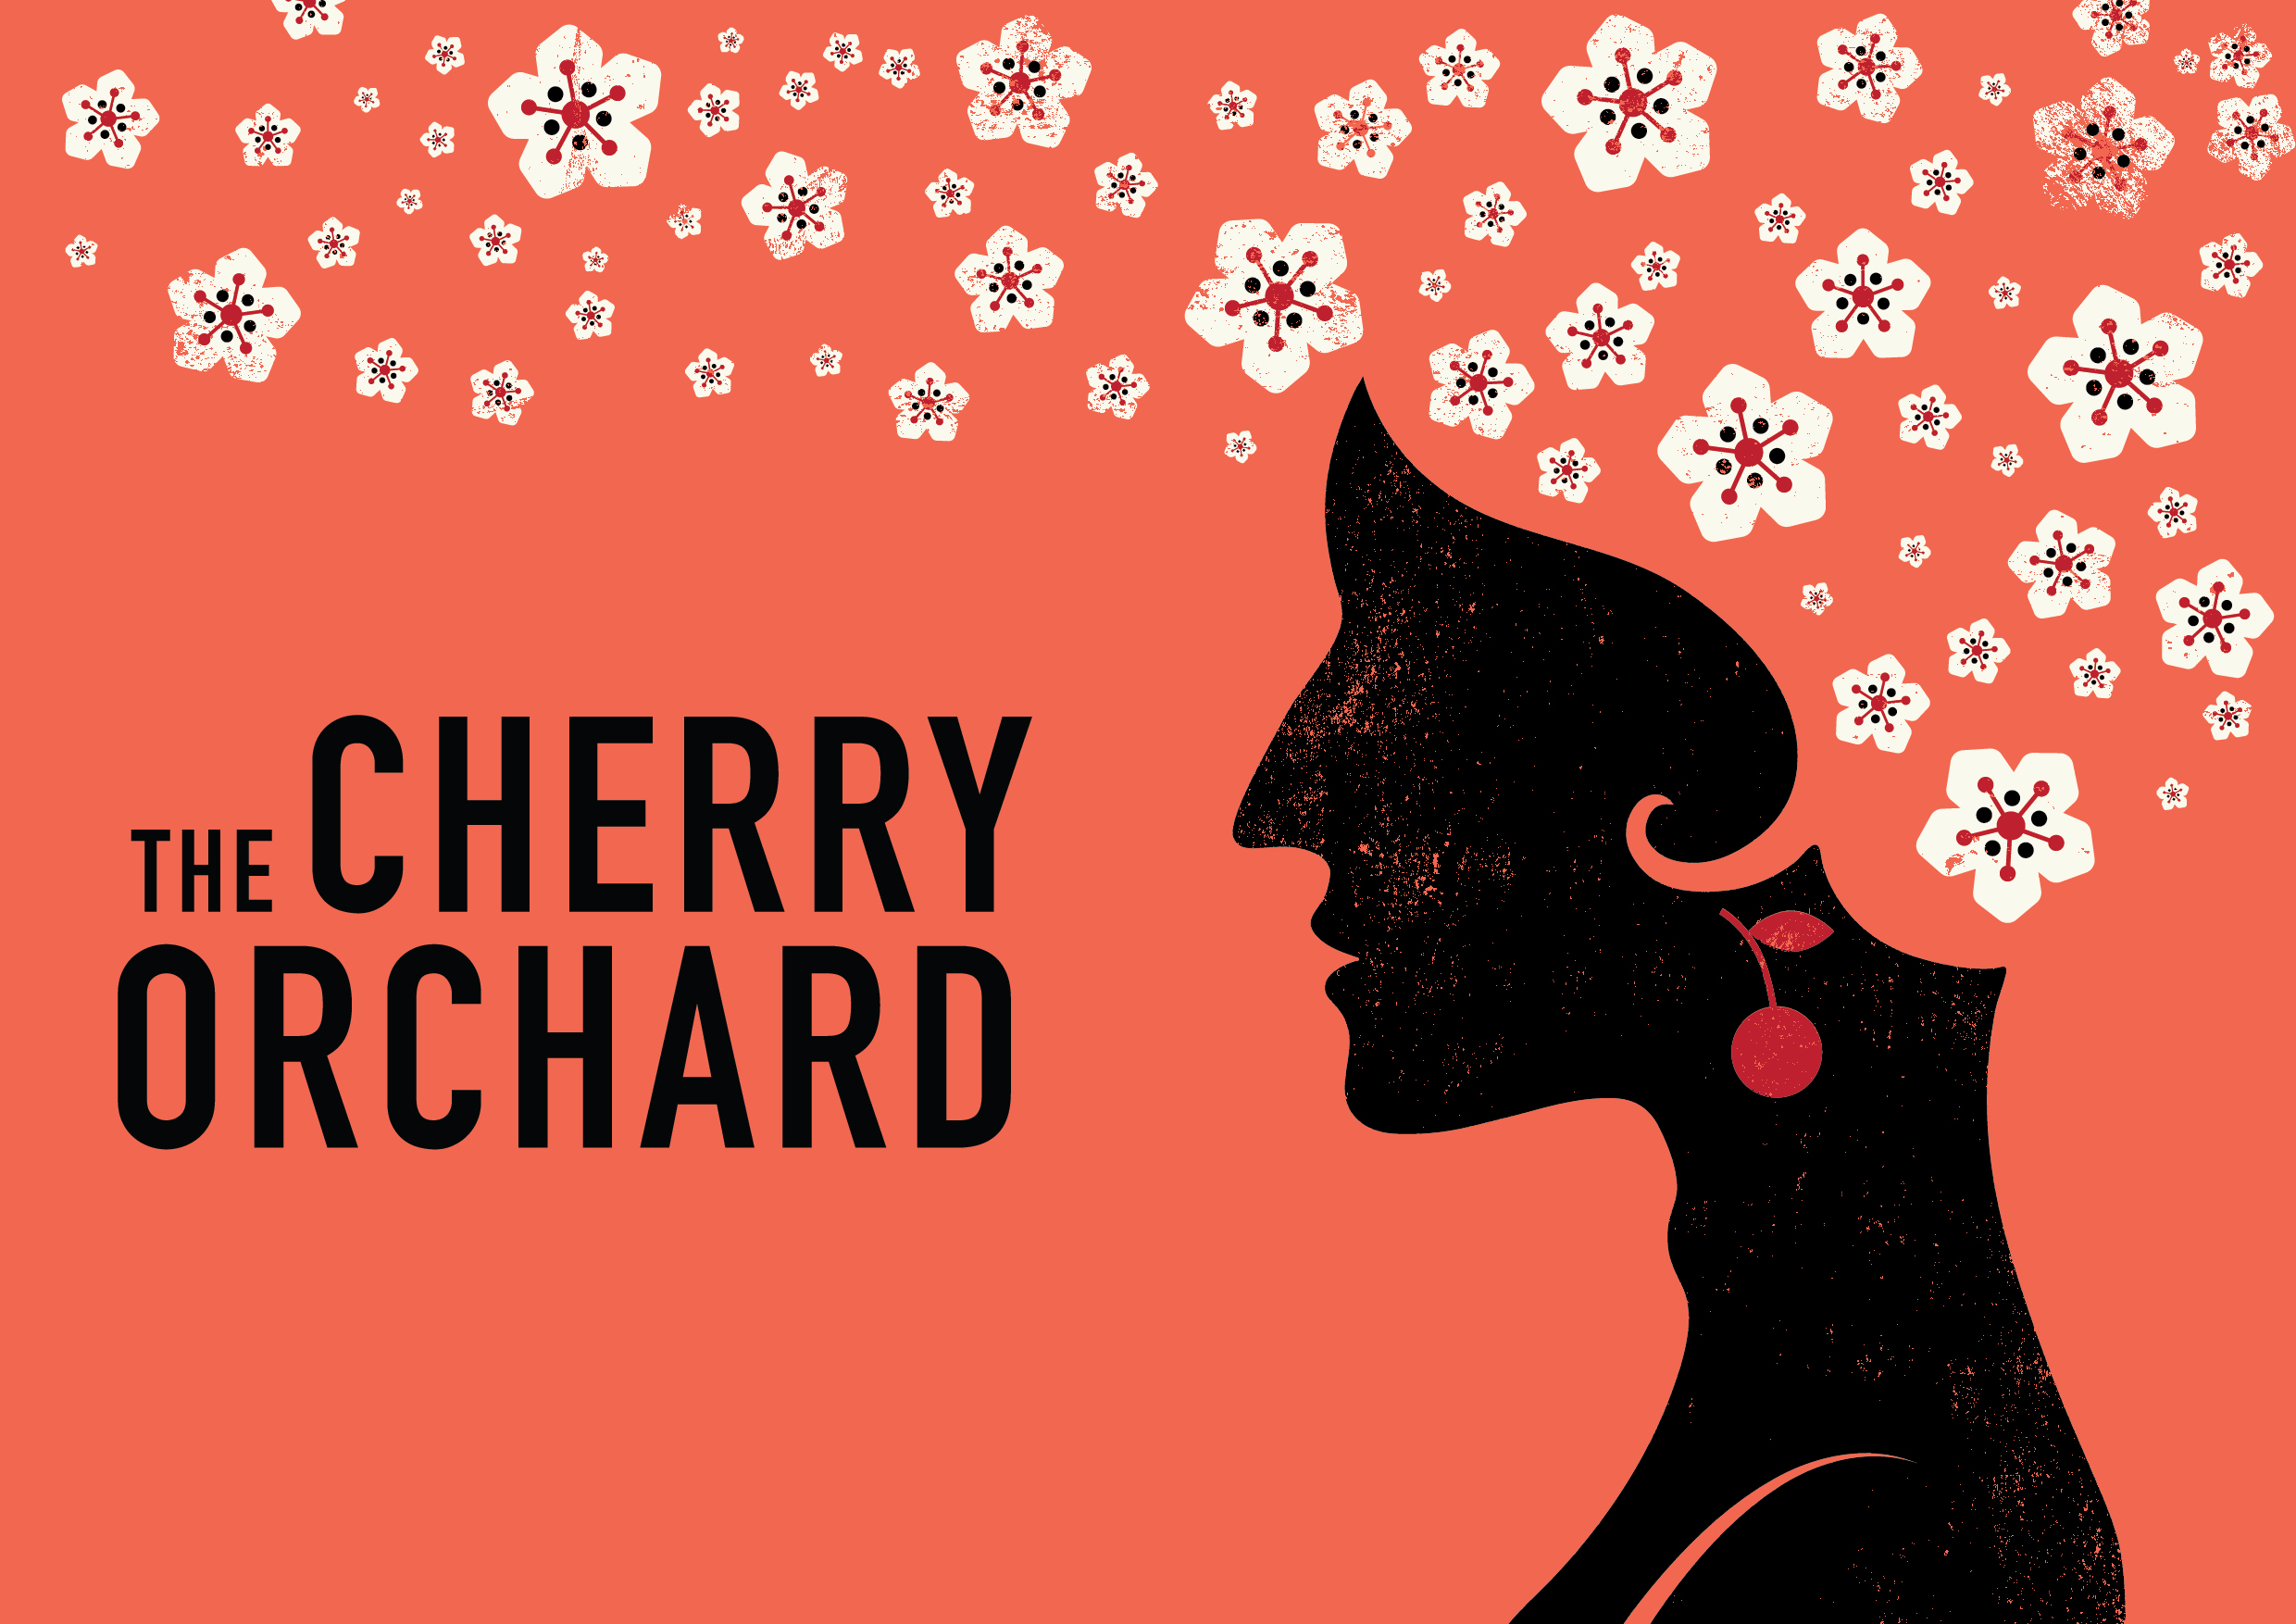 Tour poster for The Cherry Orchard